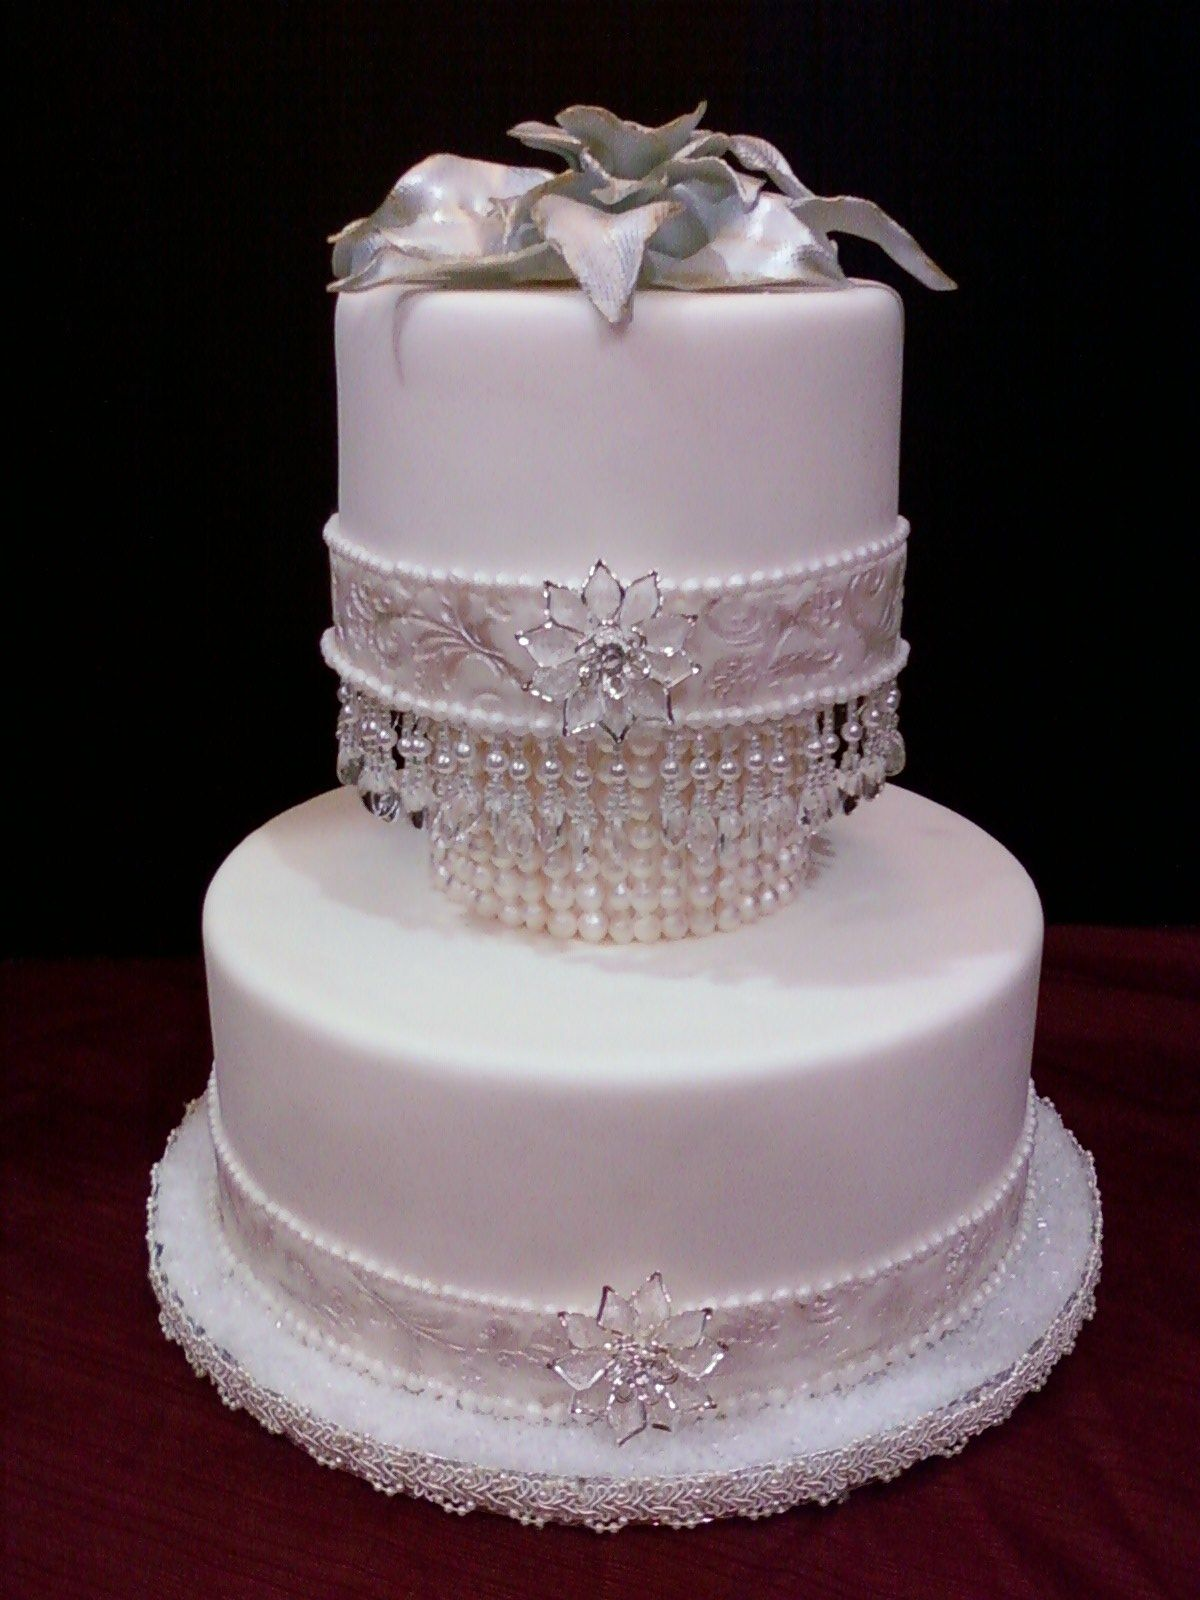 Wedding cake ornaments - Wedding Cake For A Pearls And Diamonds Theme Wedding